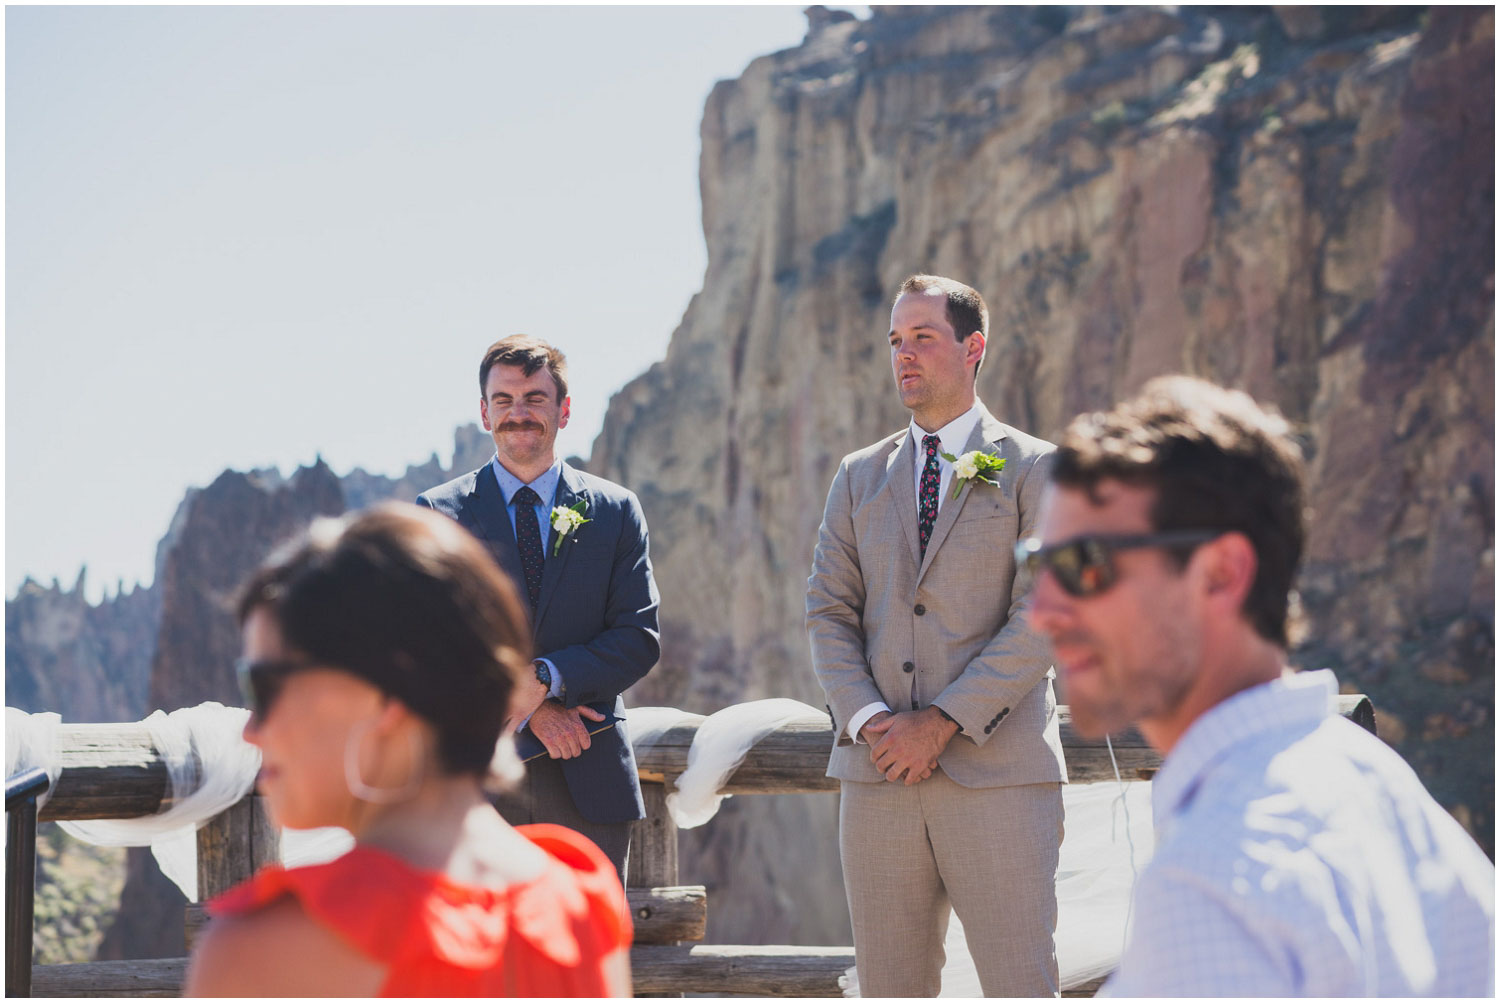 groom watching bride walk to him during wedding ceremony at smith rock terrebonne oregon